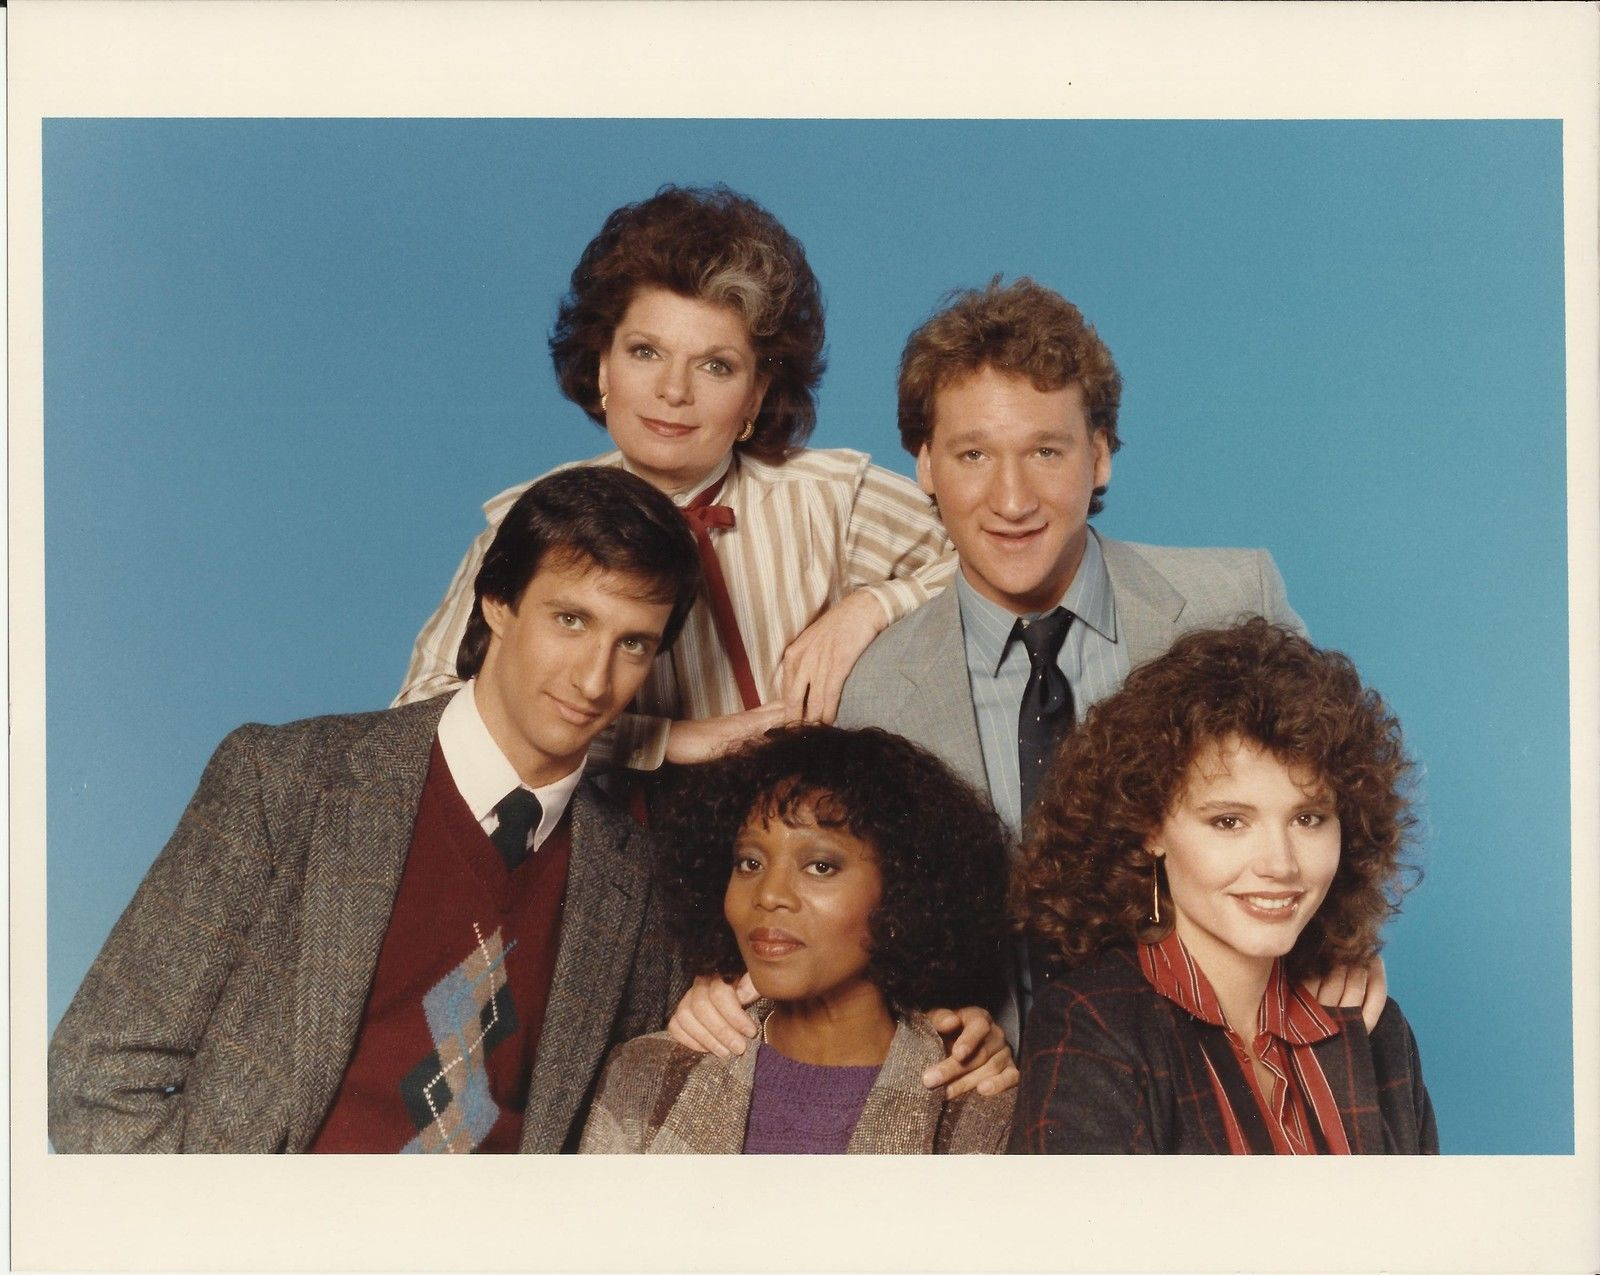 SARA_Cast_-_Original_1980s_NBC_8x10_Photo_-_Bill_Maher_Geena_Davis